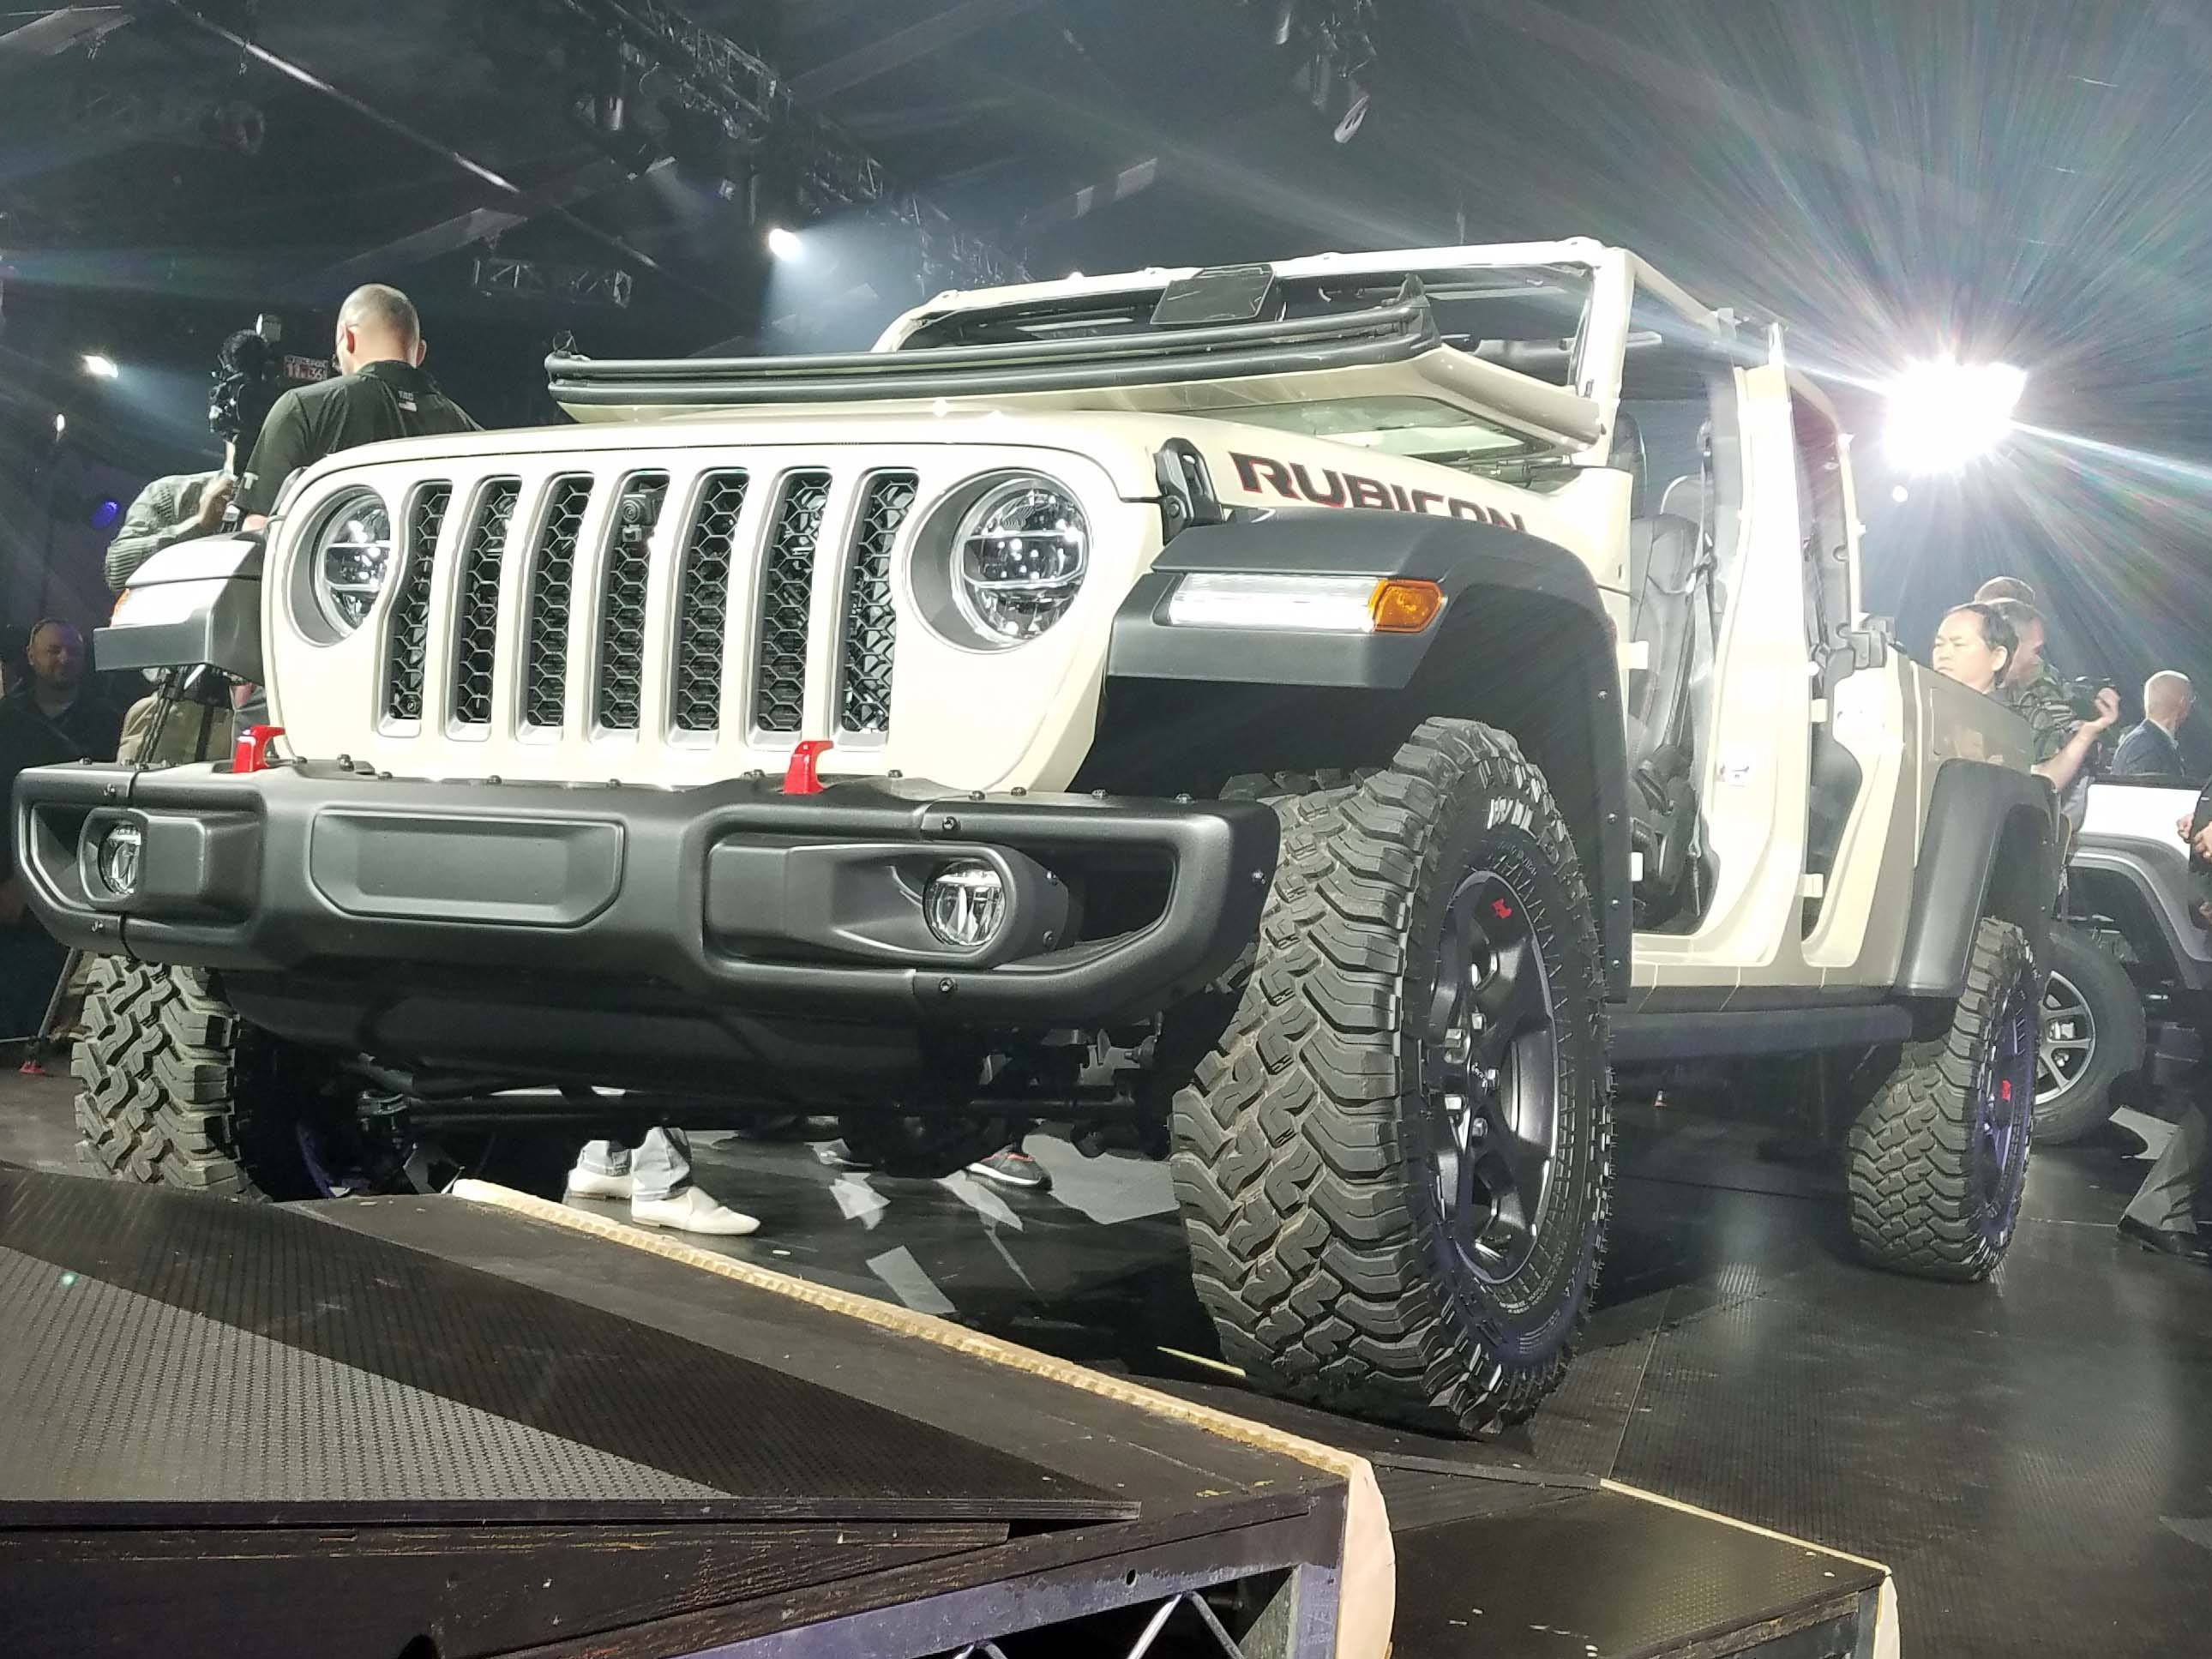 The Jeep Gladiator has the off-road capability of a Wrangler Rubicon - with the pickup utility of a big bed and 7,000-pound plus towing capacity.